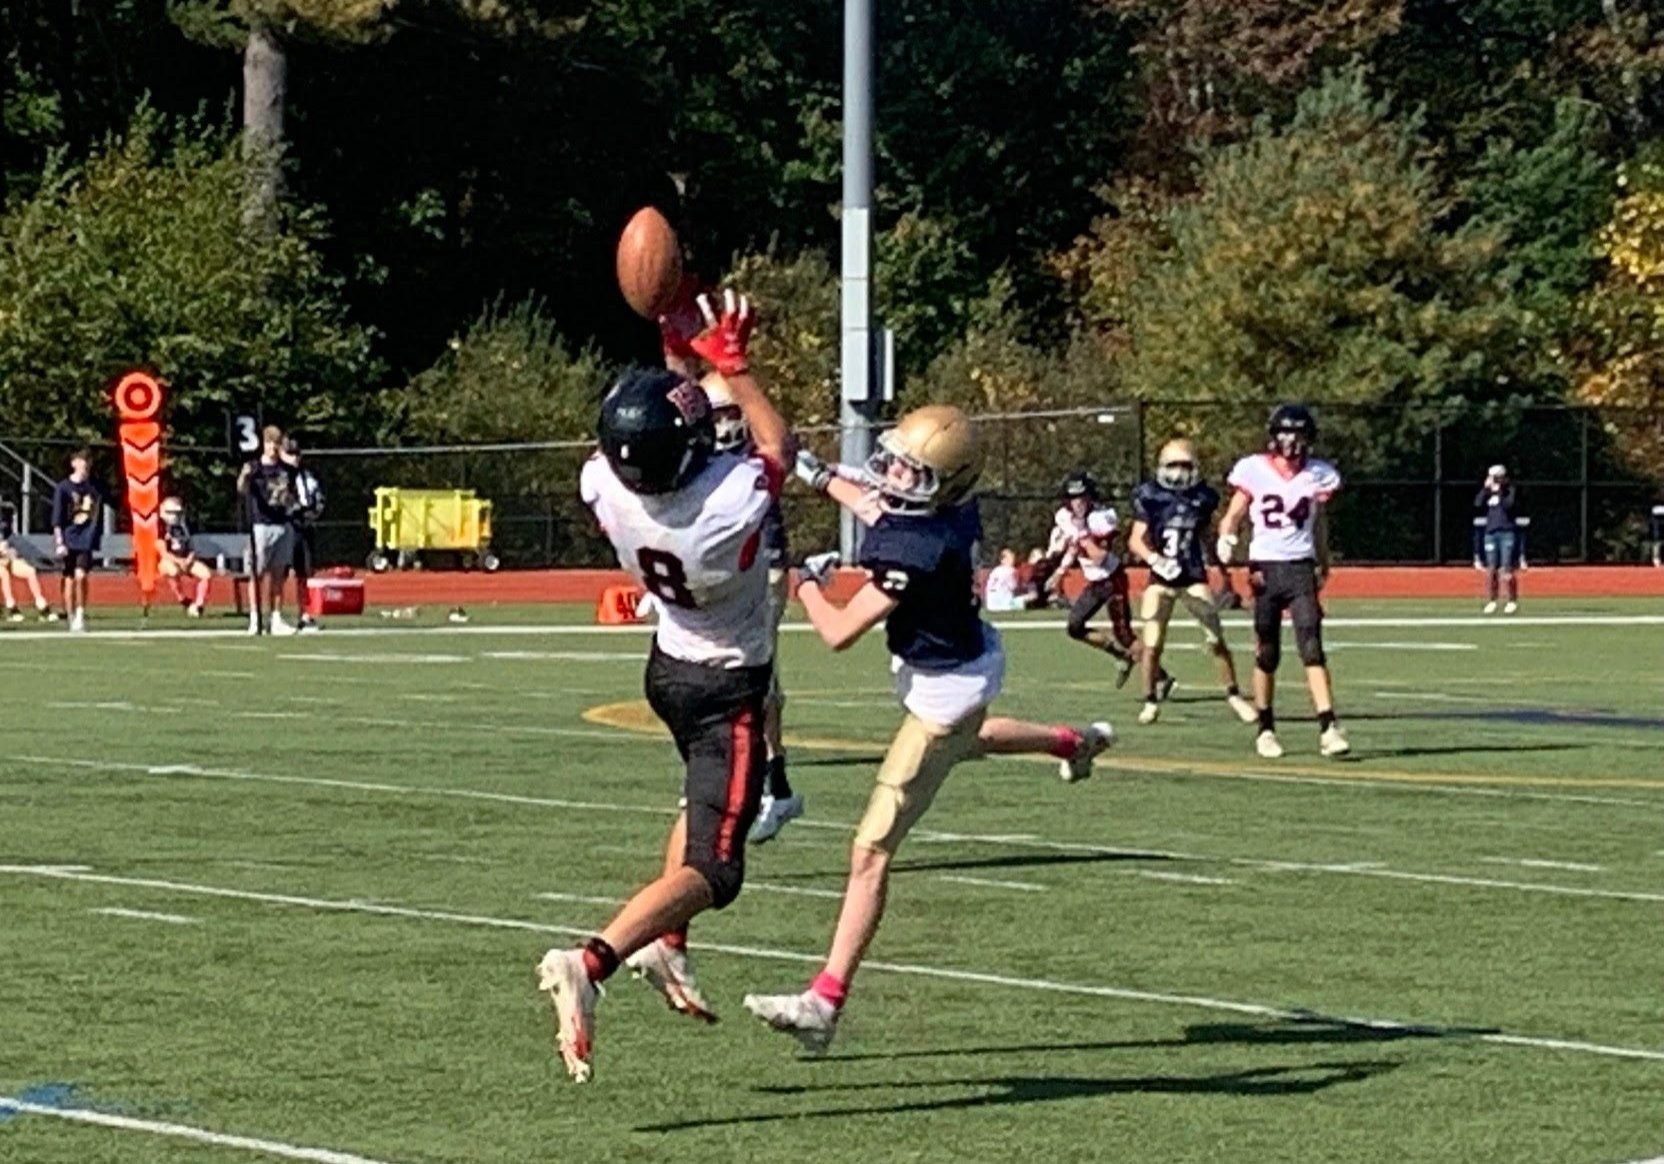 #8 JT Reale makes an acrobatic catch for a big gain.